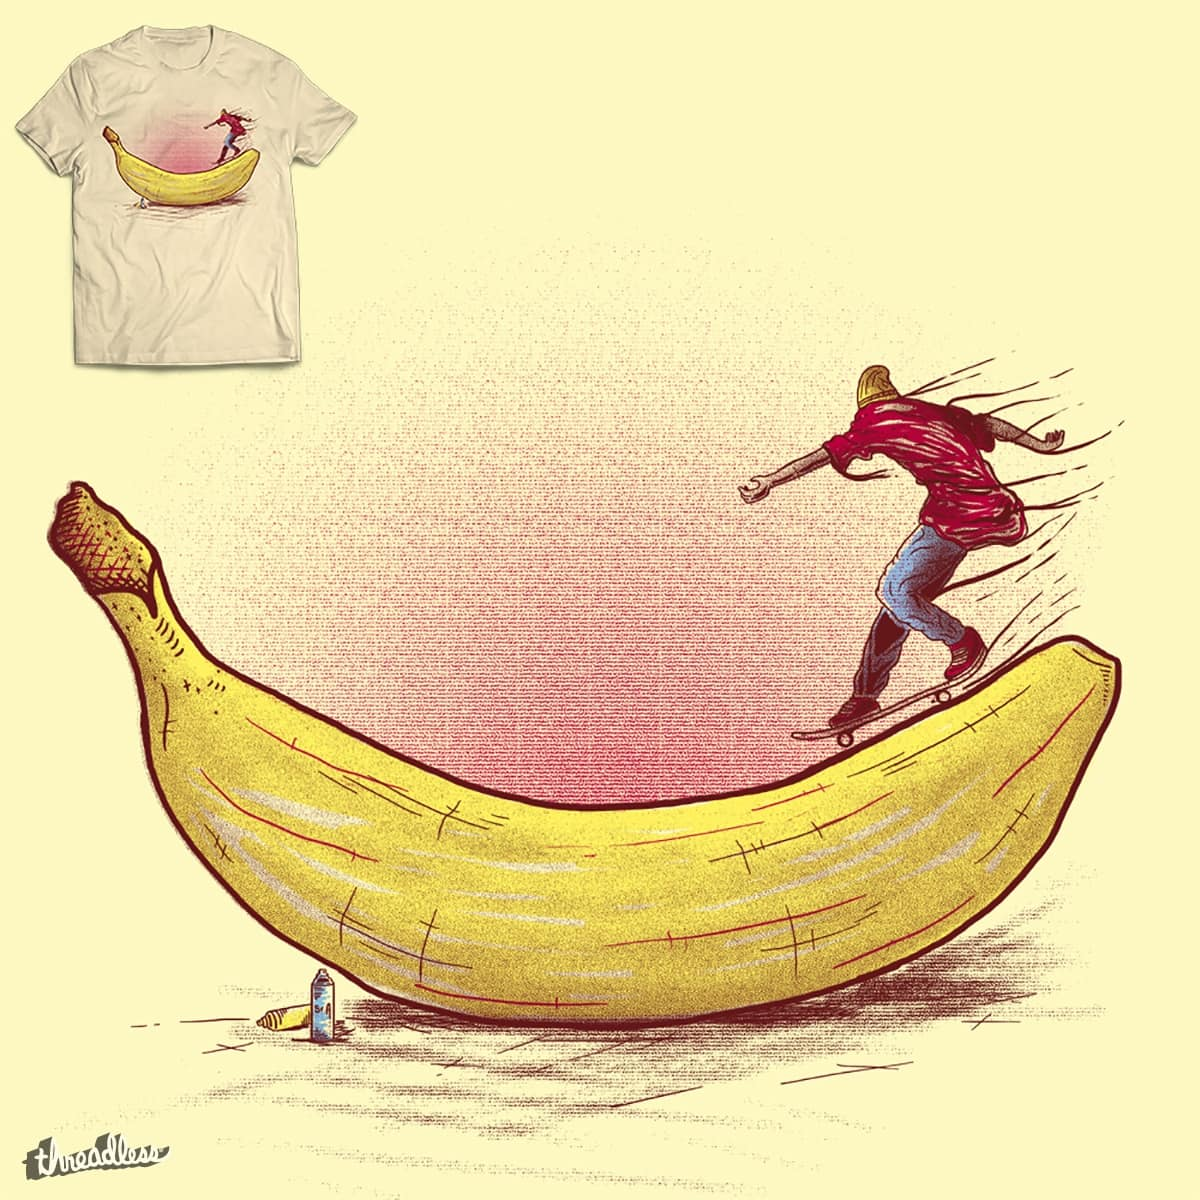 Banana! by Sr_Aderezo on Threadless